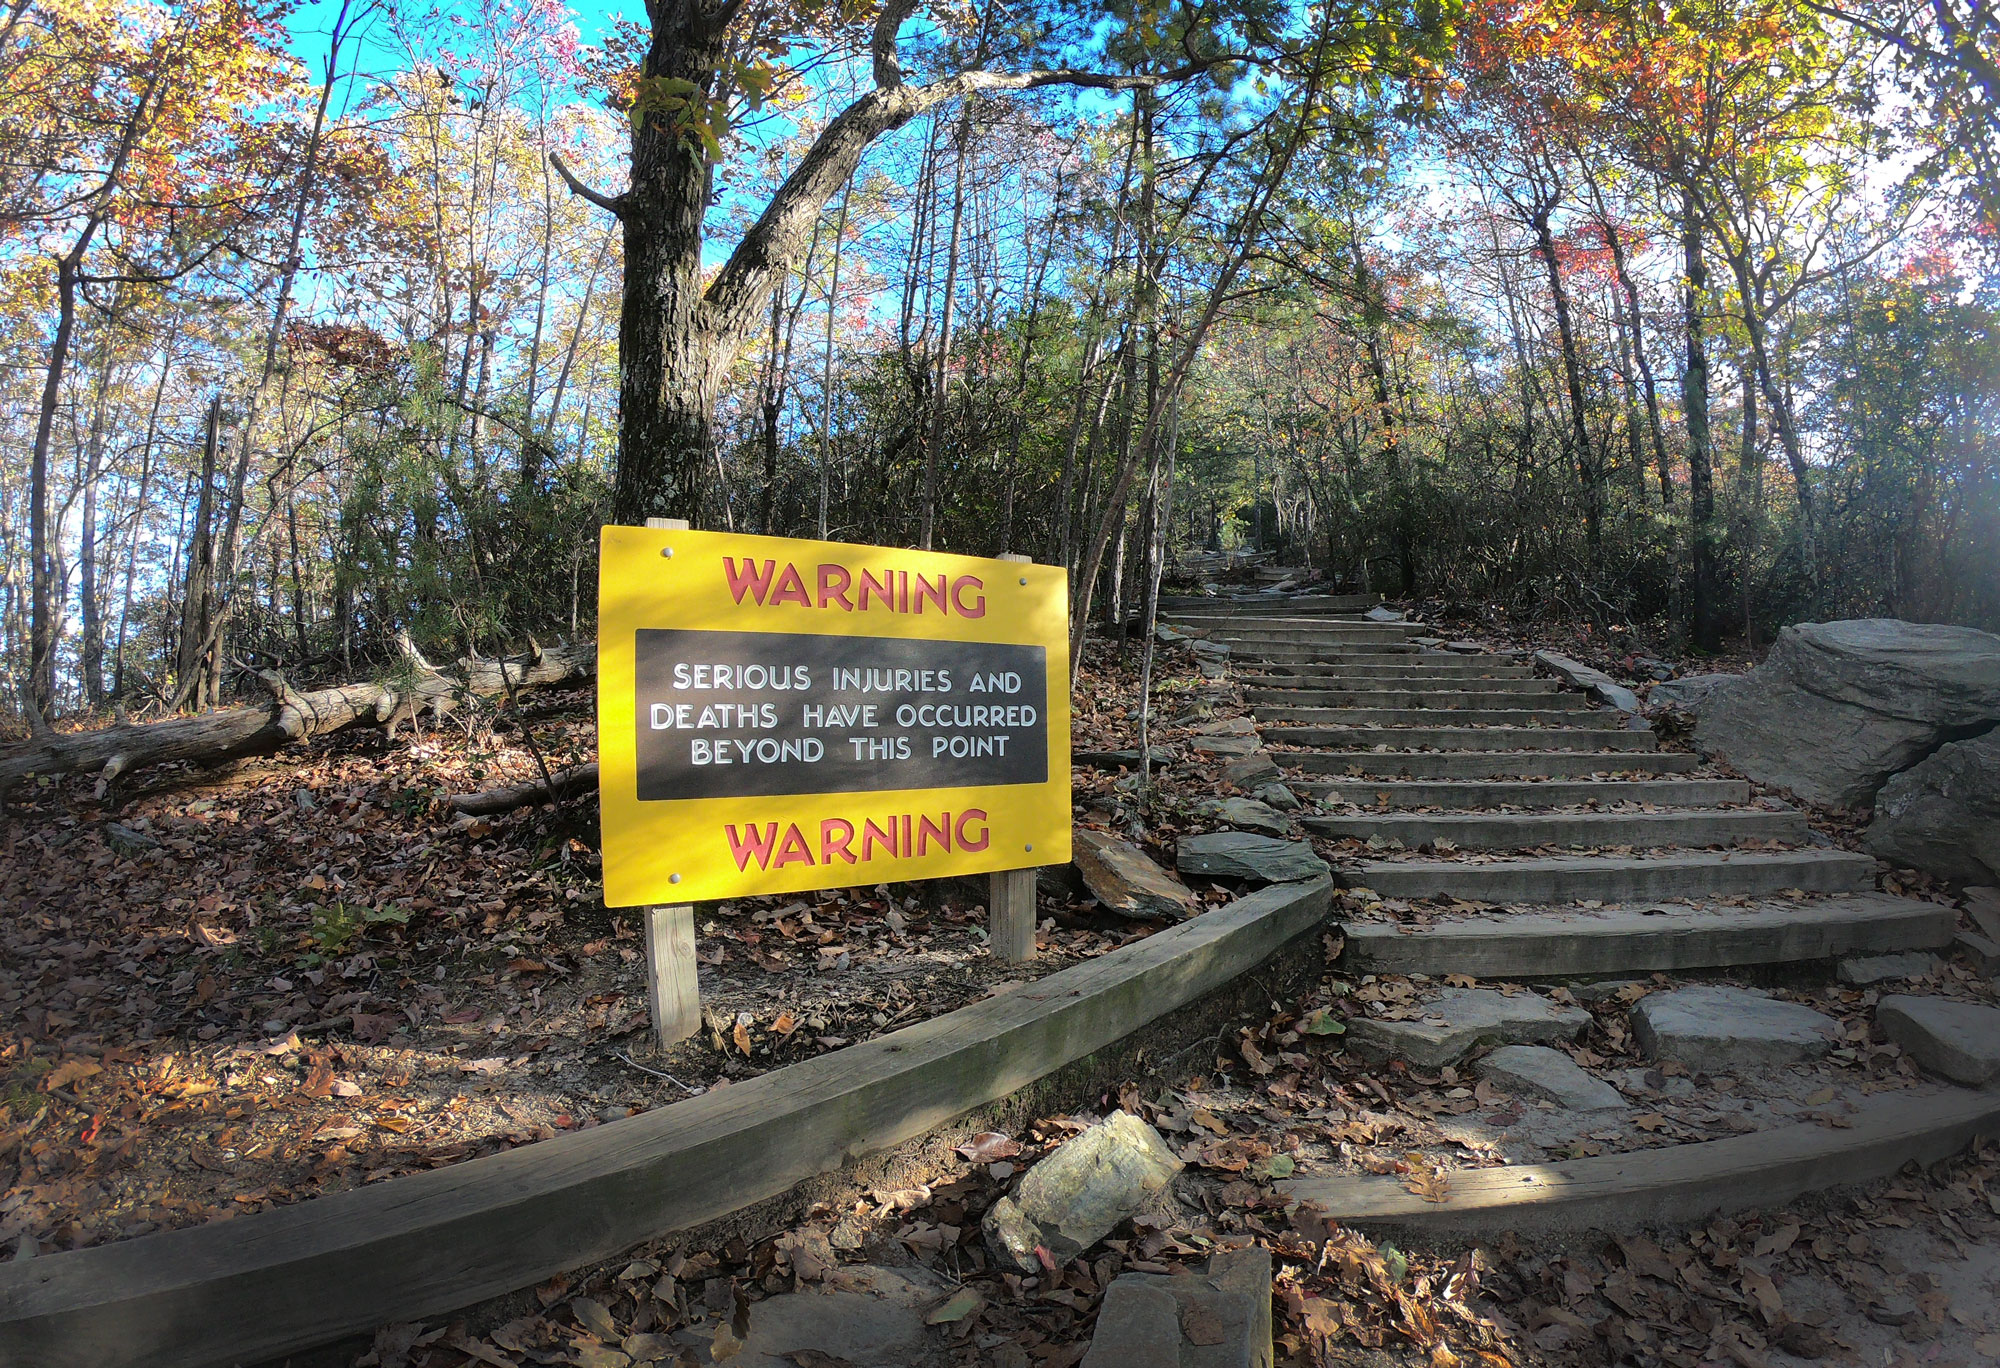 Yellow warning sign for serious injuries on Hanging Rock Trail while camping in Hanging Rock State Park, North Carolina